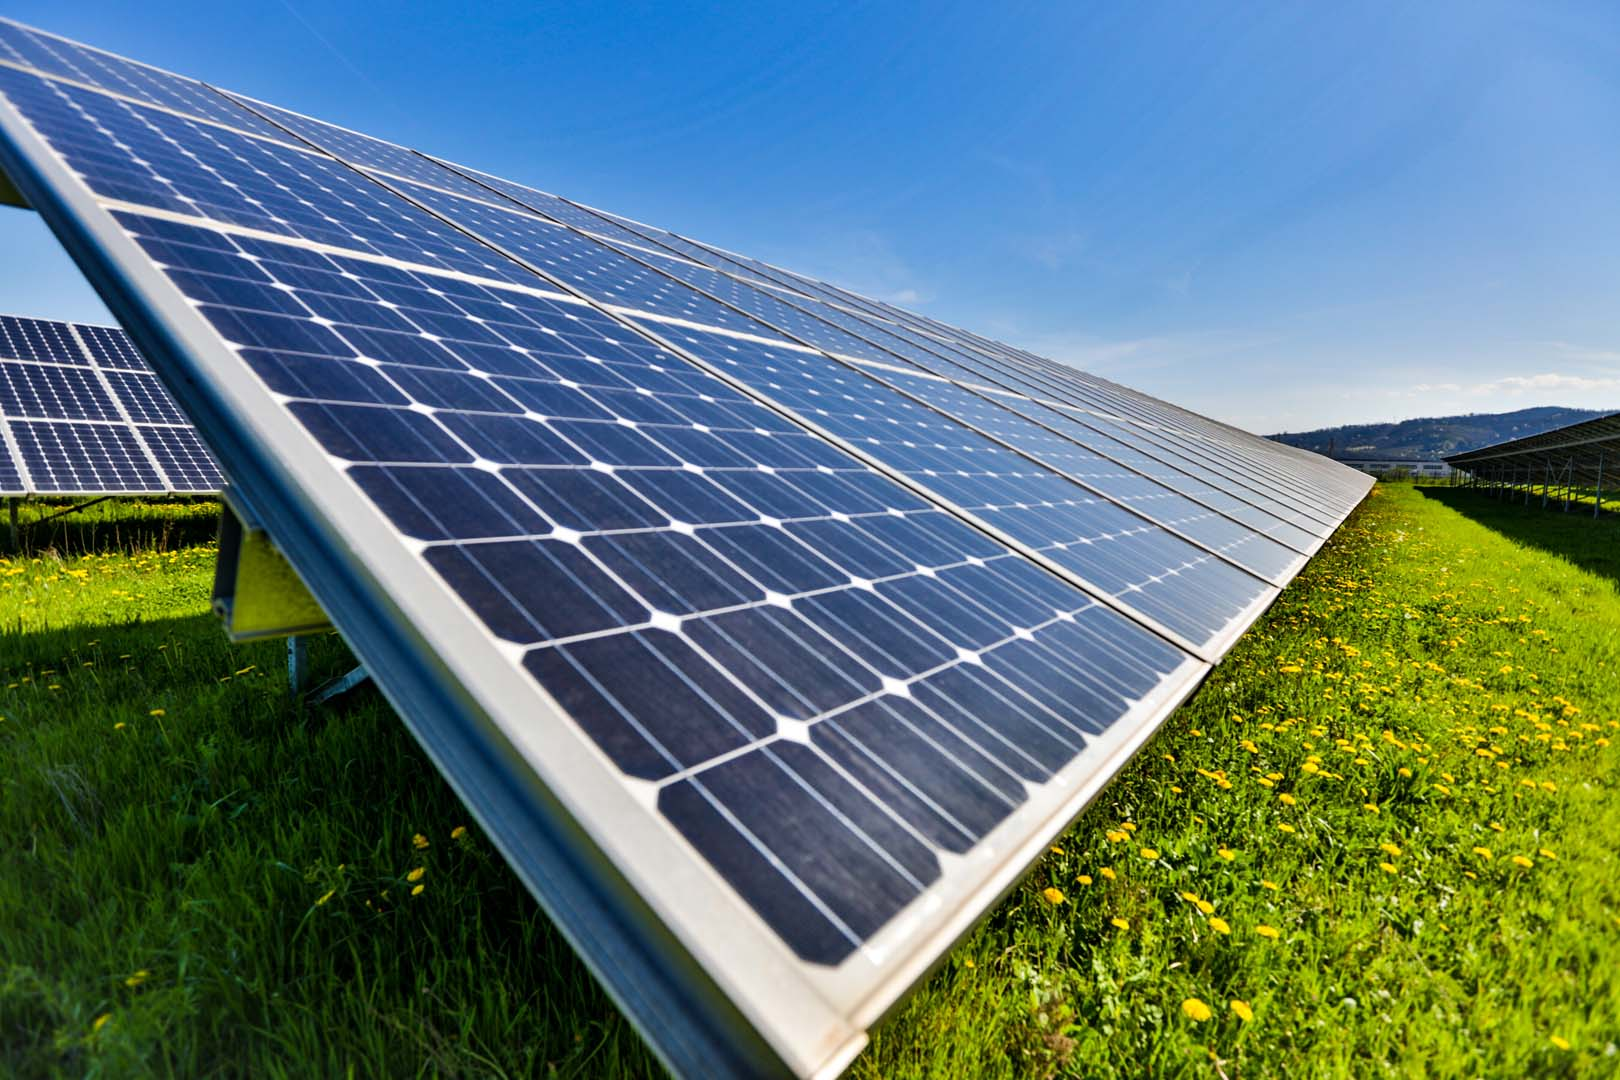 The financing included a debt service reserve facility and long-term facility, which has been partially disbursed for the refinancing of 41 total PV installations. Image: Sonnedix